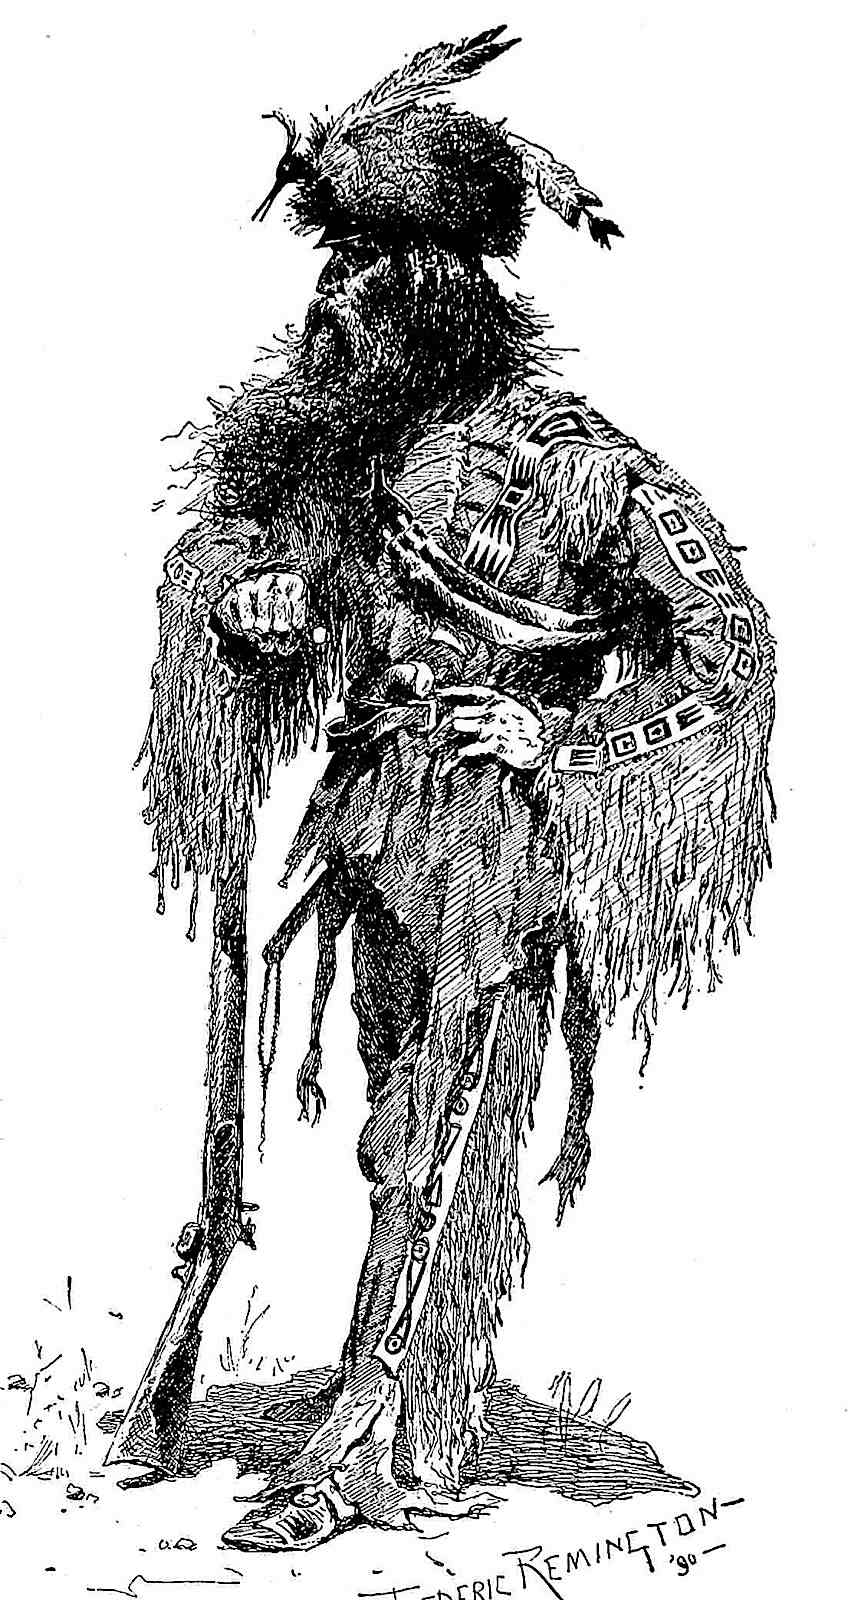 a 1990 Frederic Remington drawing of a USA frontier scout or hunter